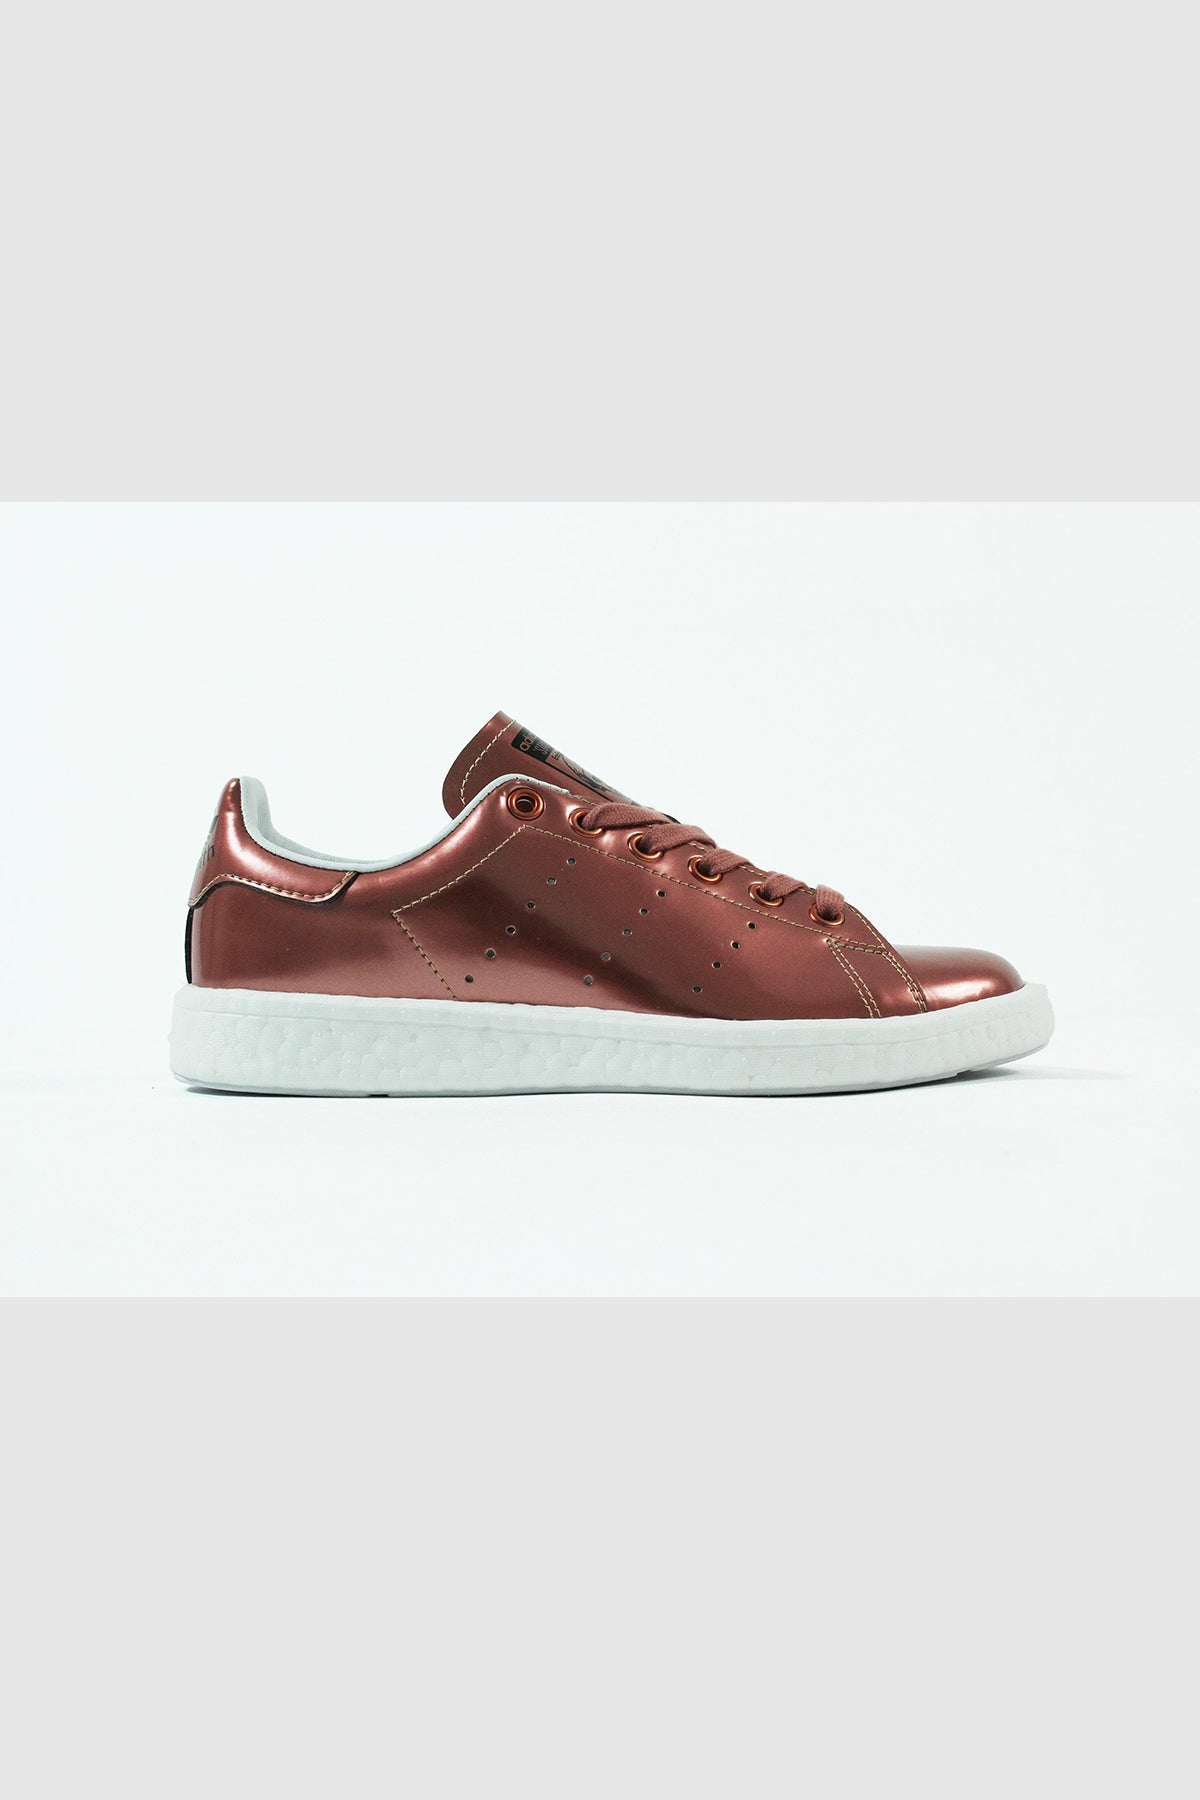 Adidas - Stan Smith Boost Women (Copper Metallic/ White)